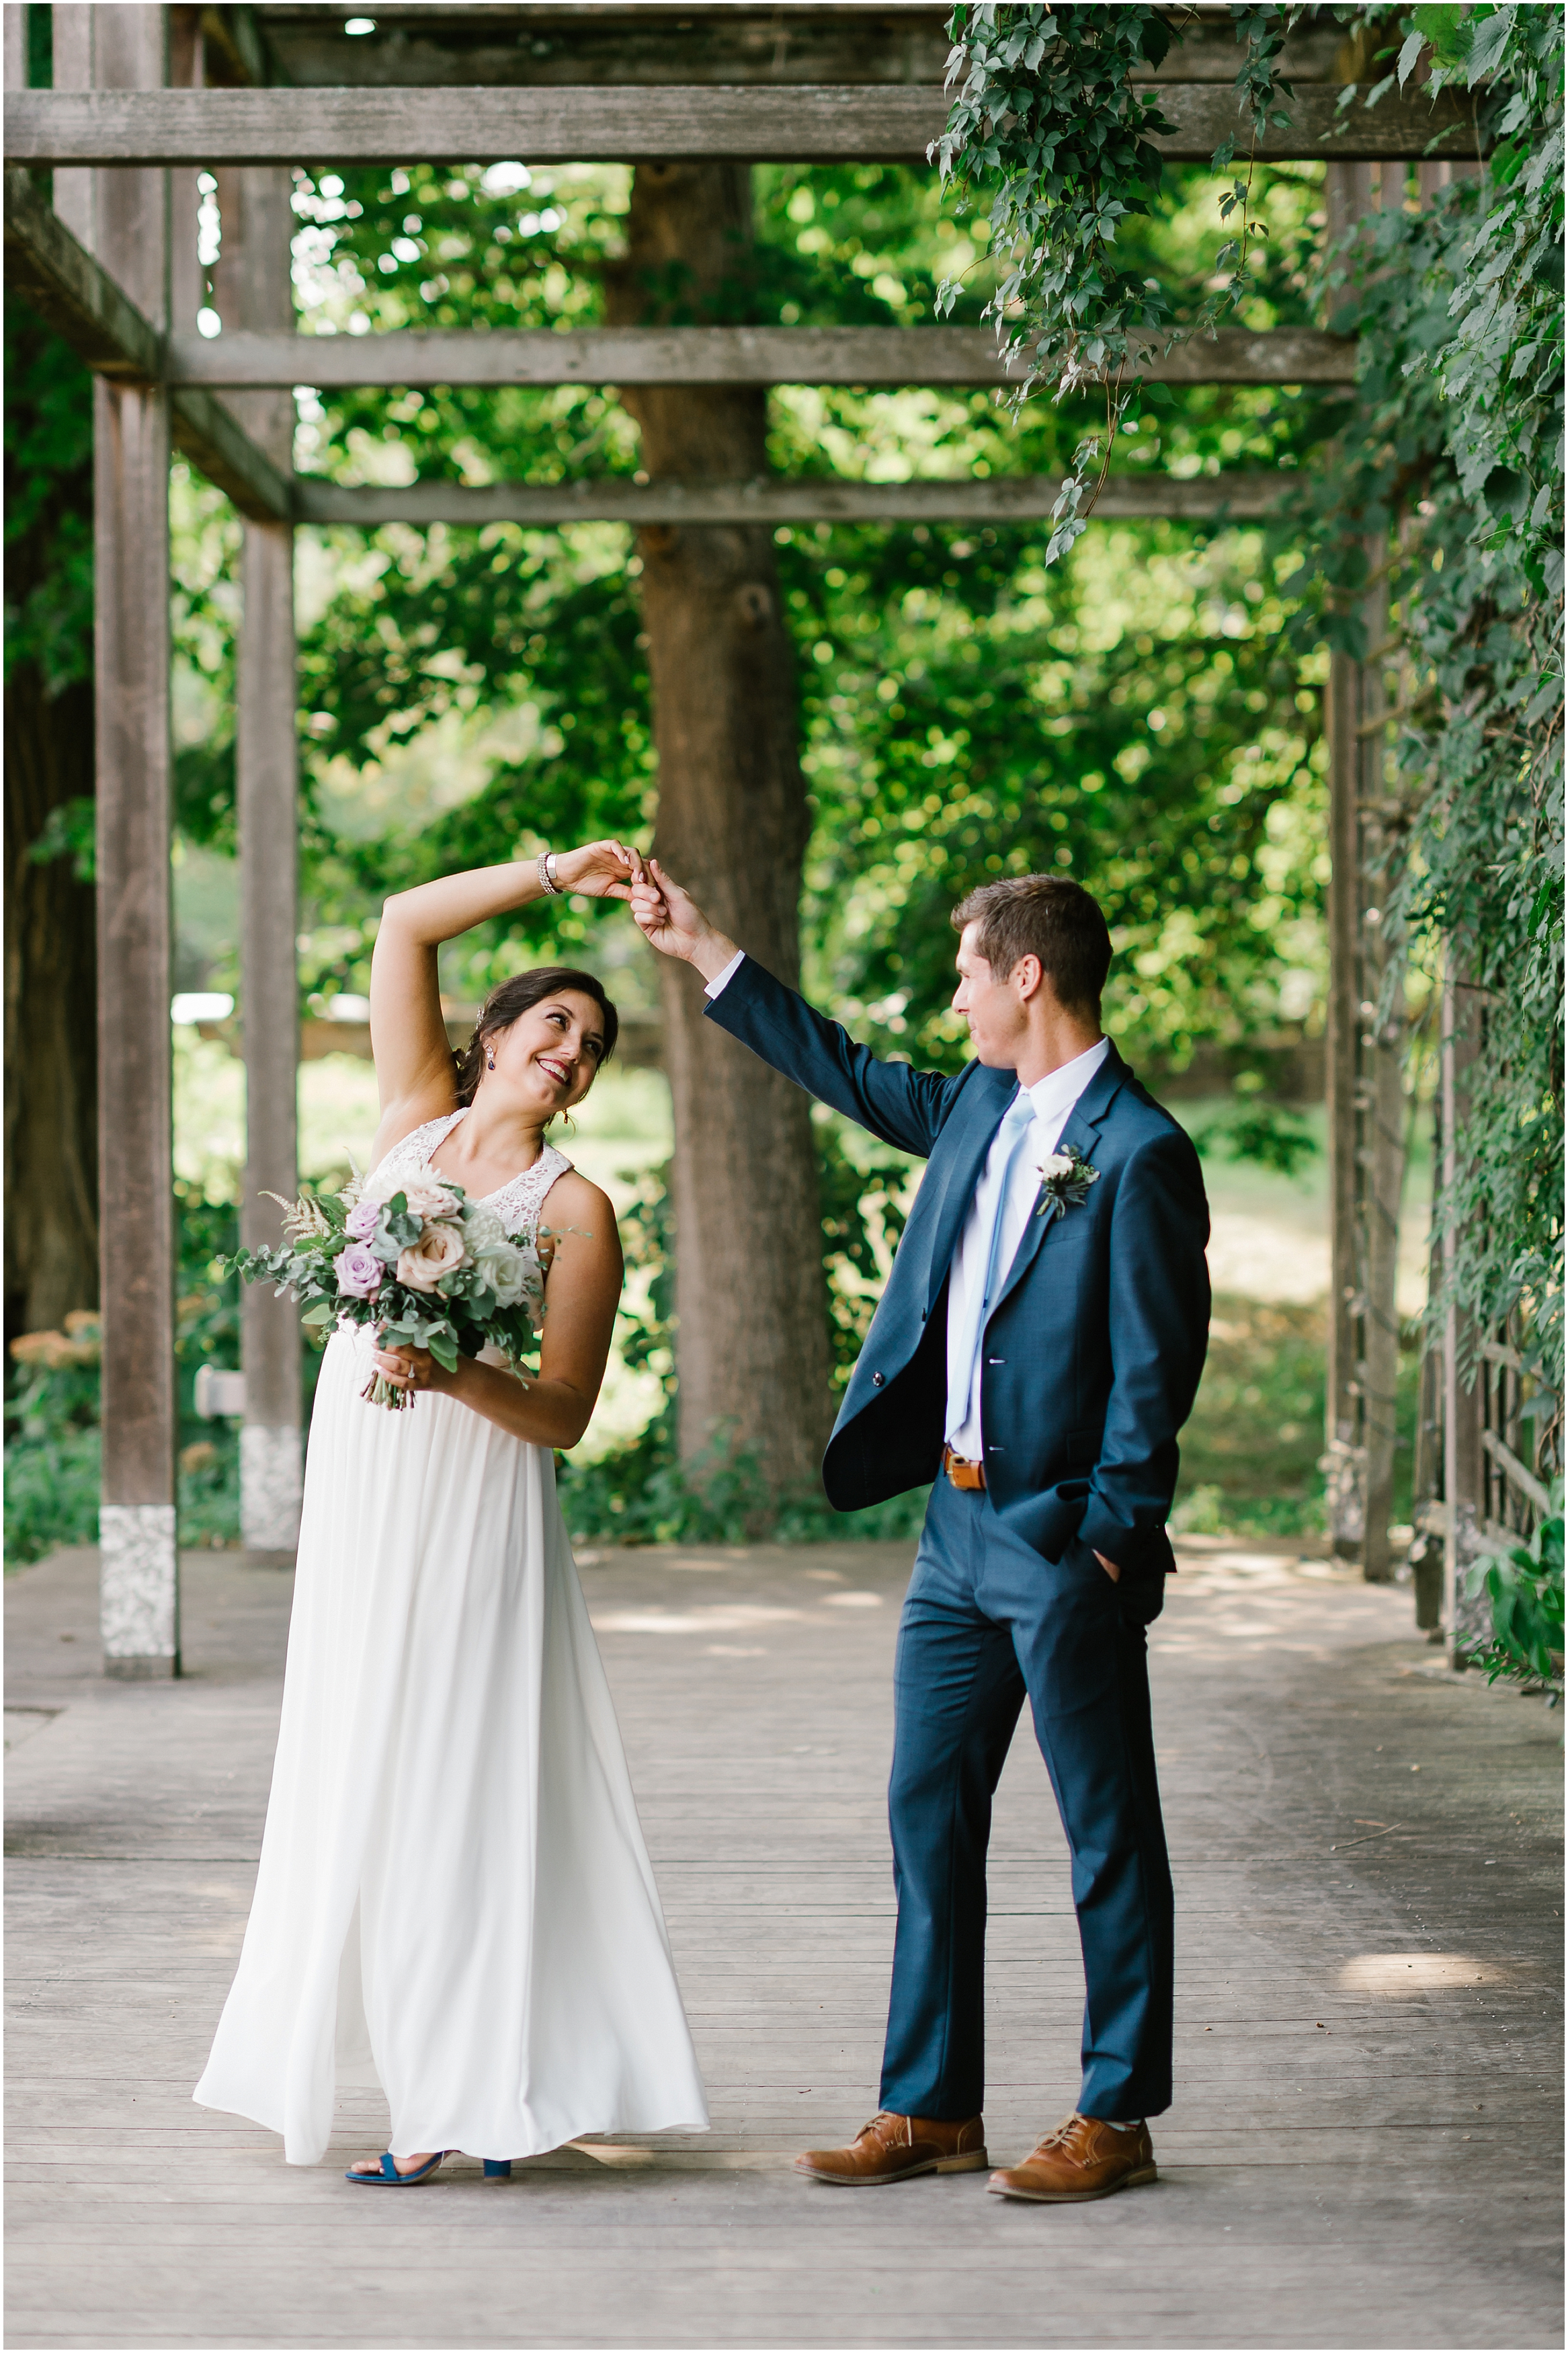 Rebecca Shehorn Photography Indianapolis Wedding Photographer Just Pop In Wedding_0638.jpg